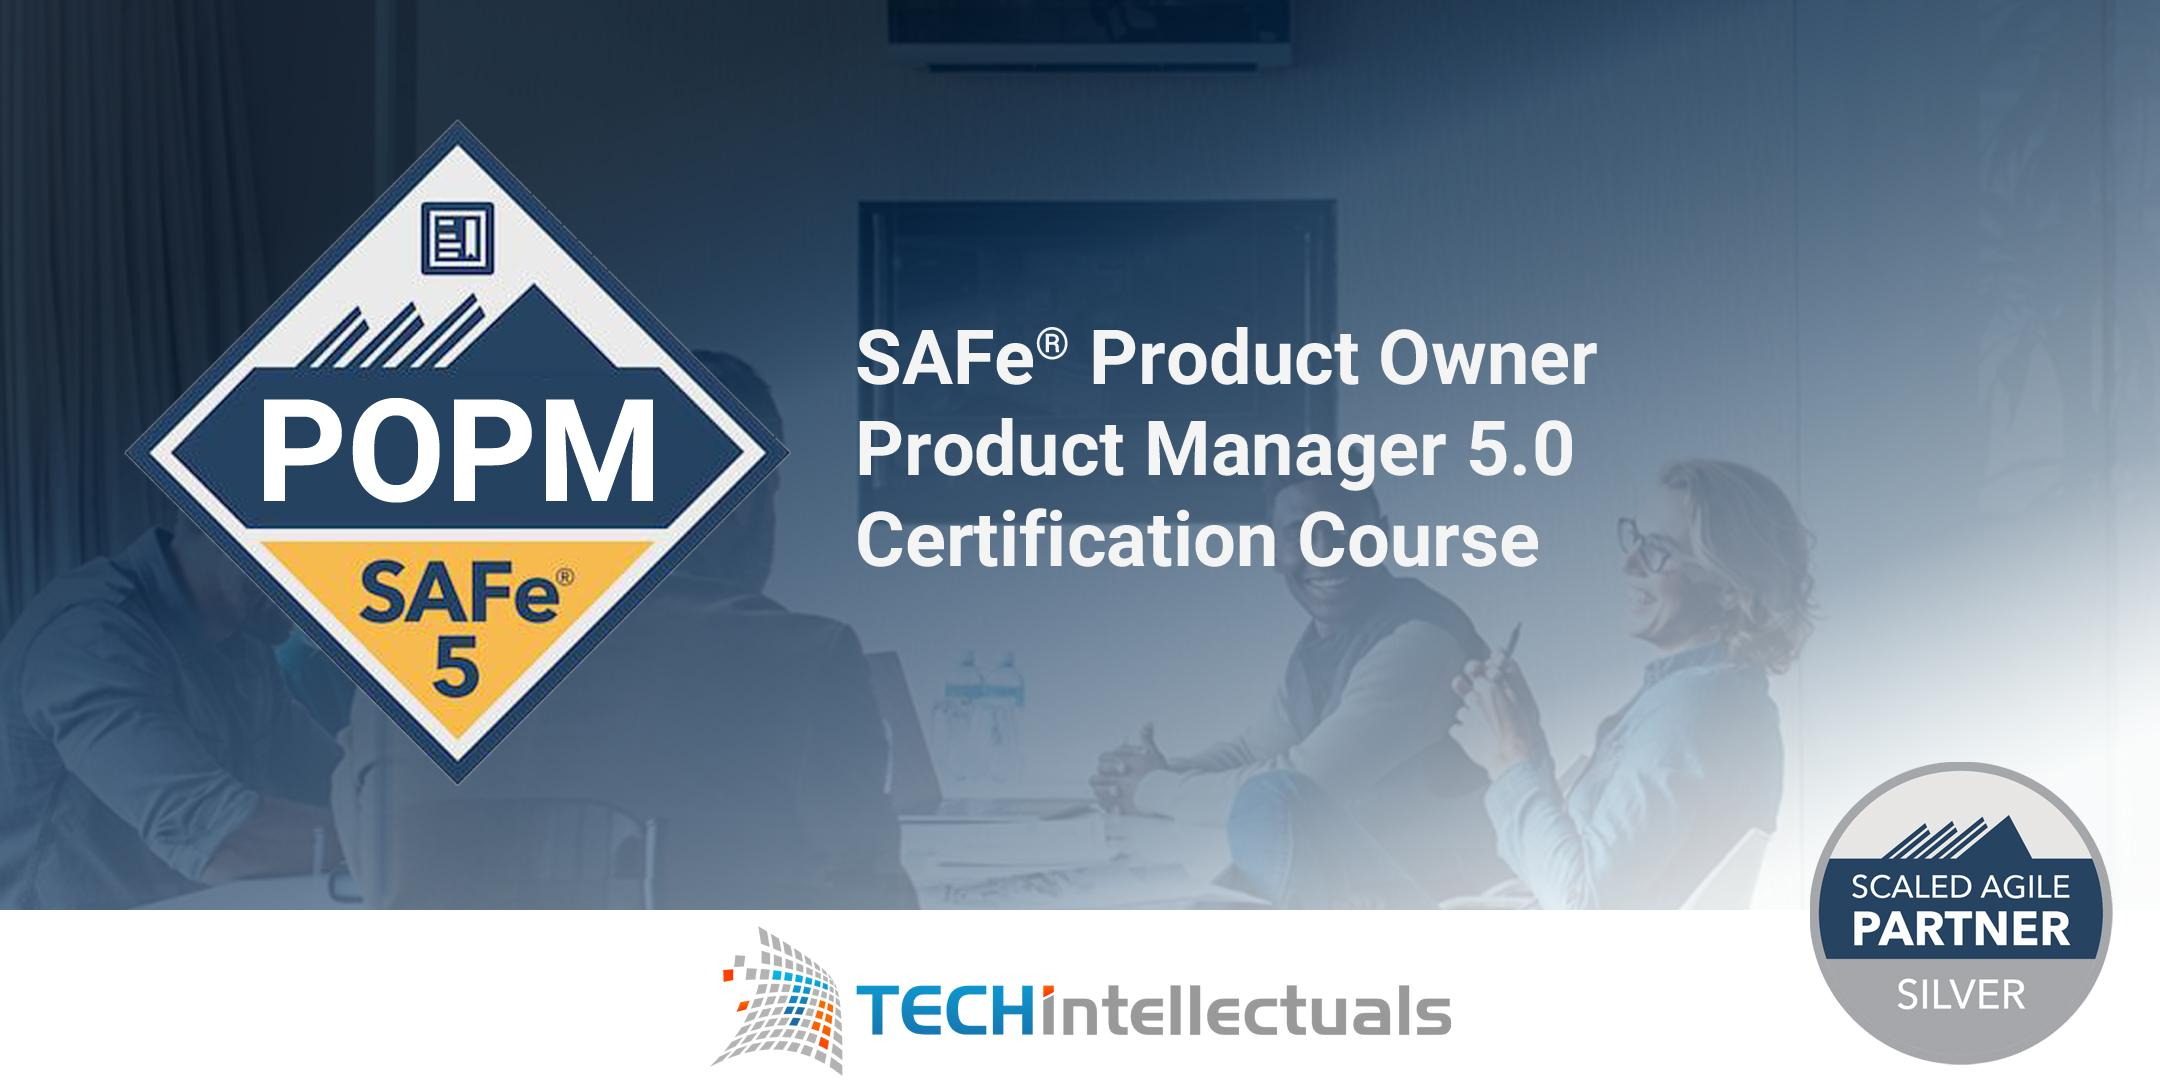 SAFe® Product Owner/ Product Manager - POPM 5.0 - Houston, Texas